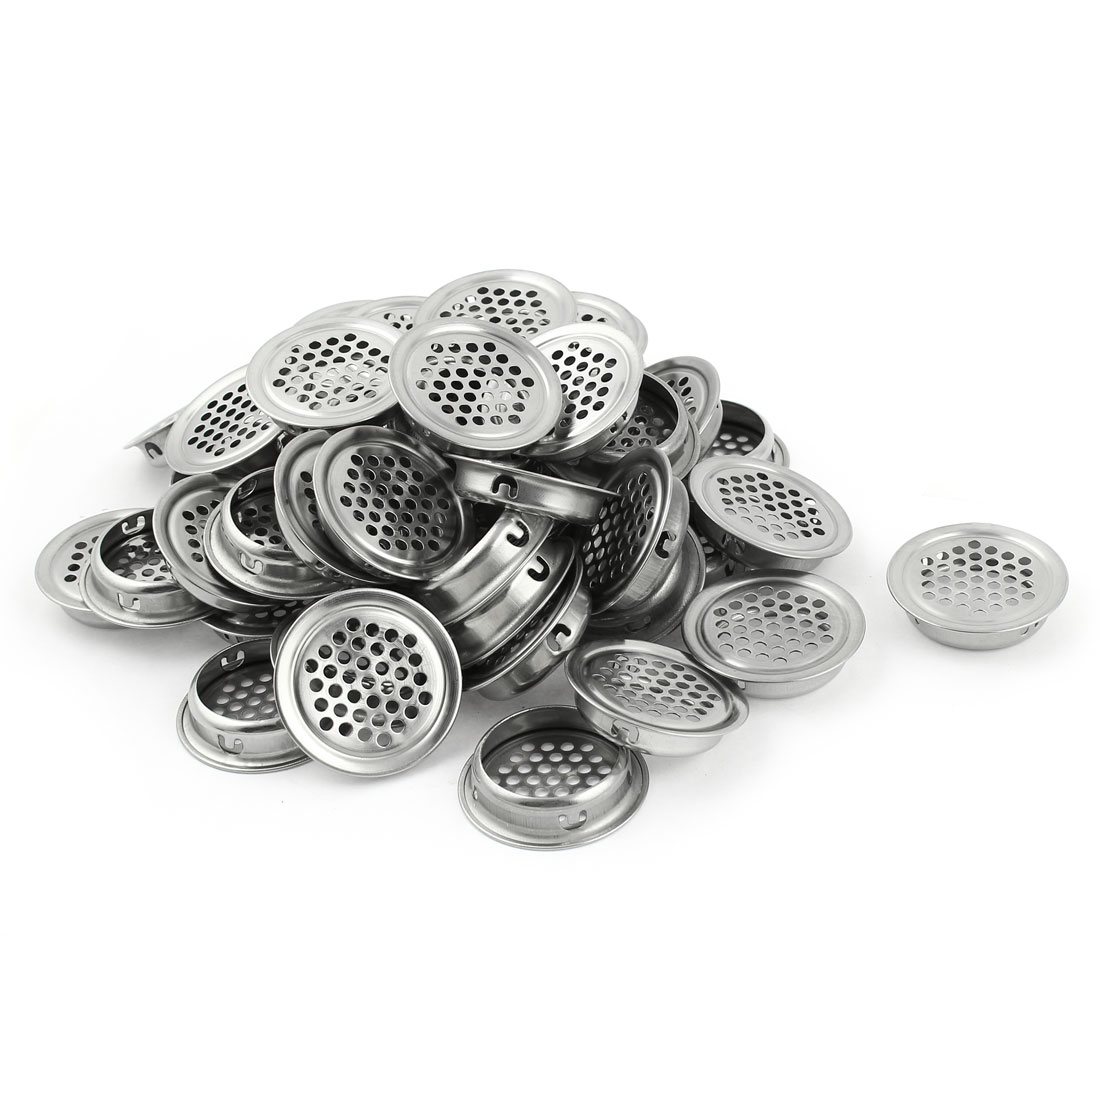 50 Pcs Stainless Steel 35mm Bottom Dia Round Mesh Hole Air Vent Louver